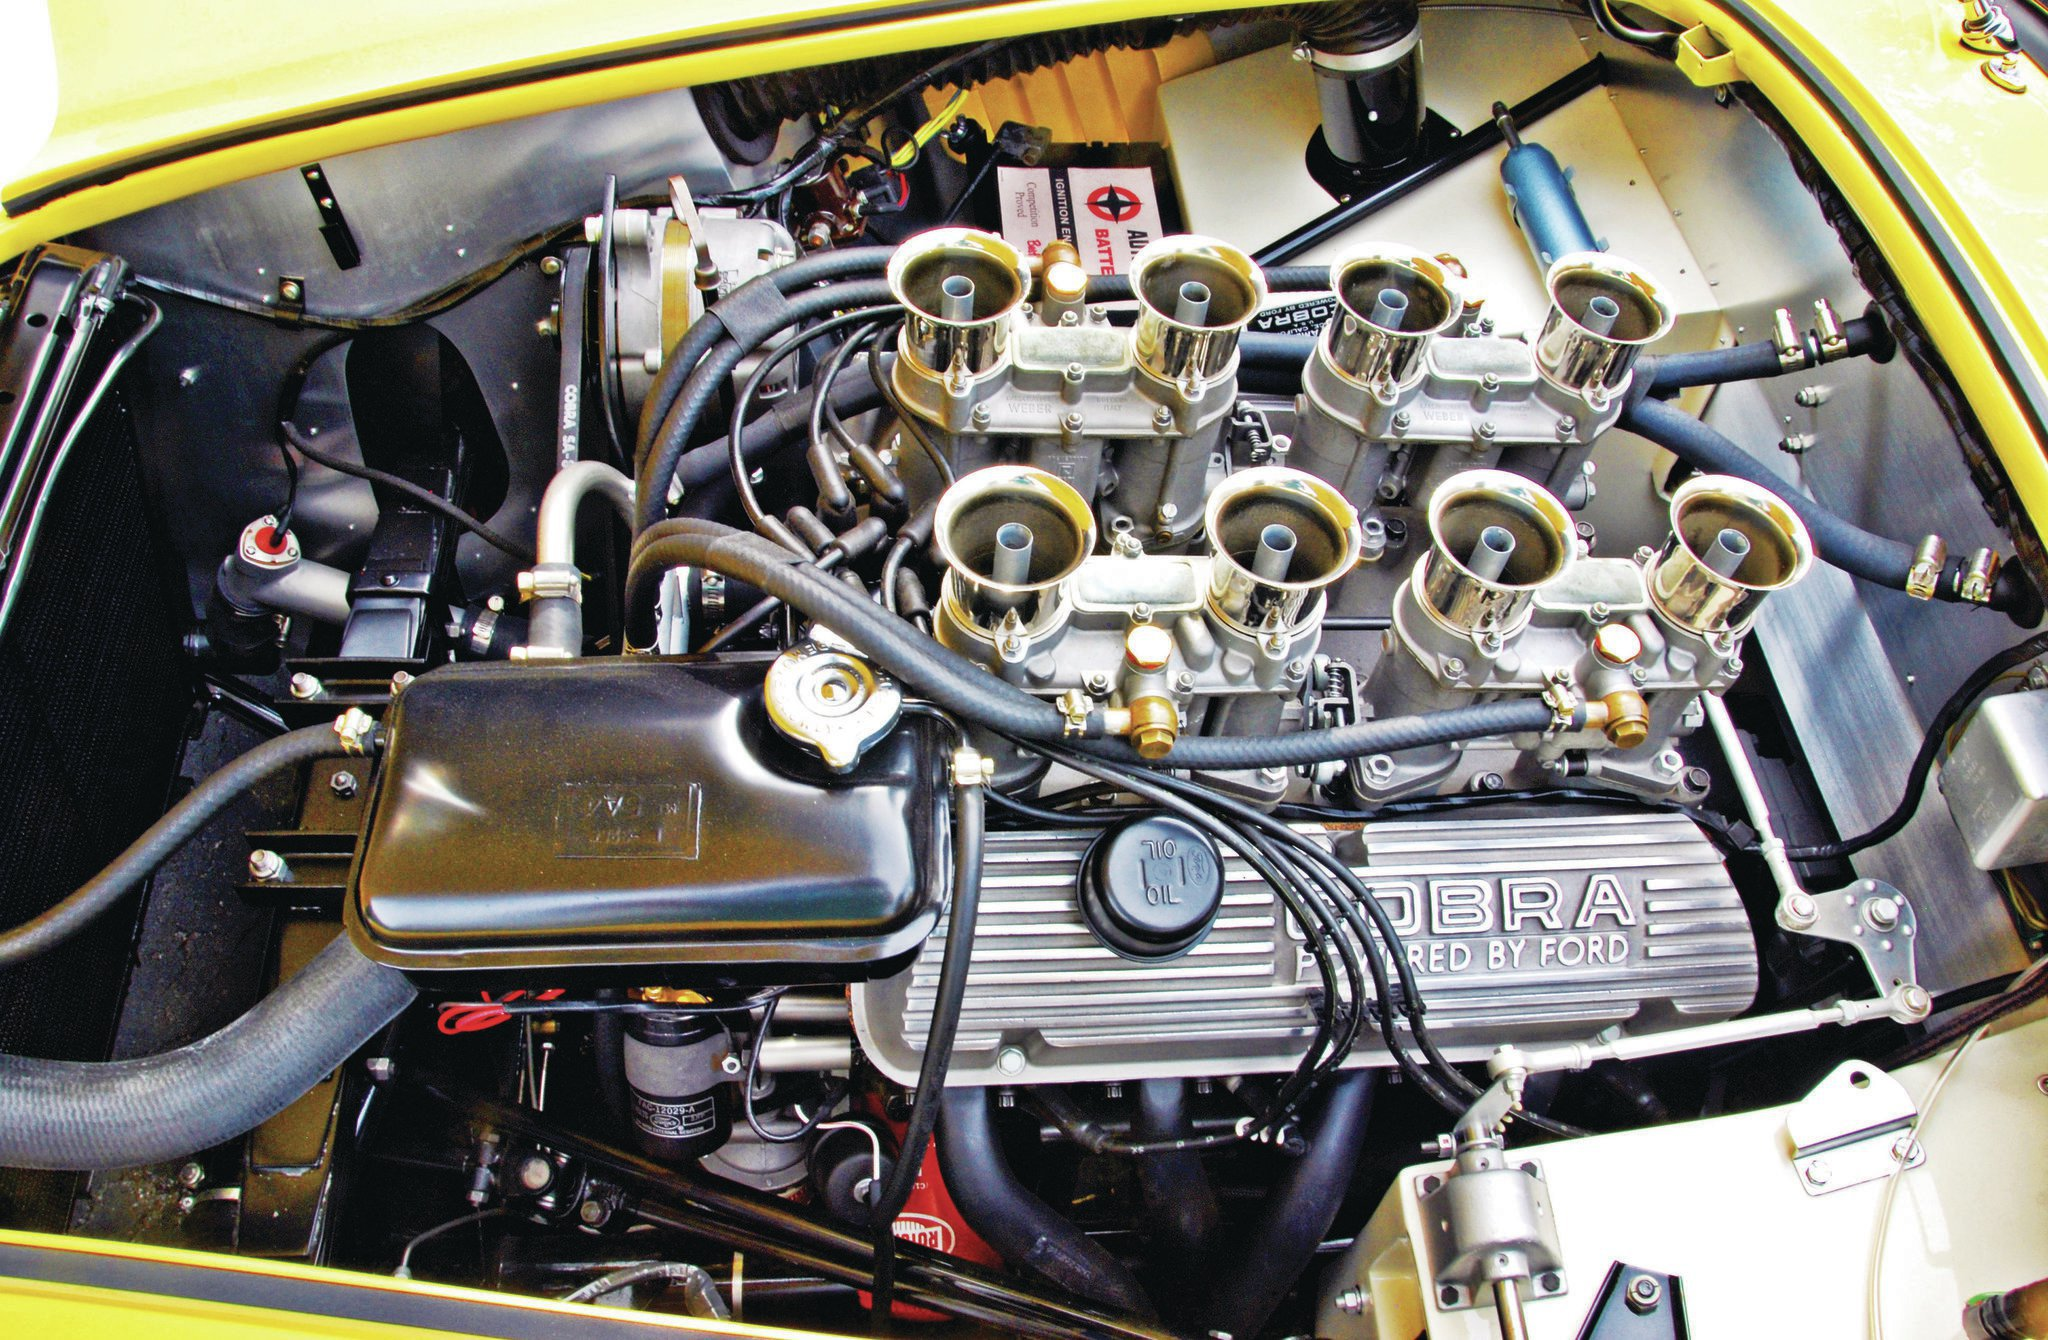 The Shelby Dragonsnake Phase III treatment brought a quartet of 48mm 2-bbl Webers into the mix. This is the only factory Cobra sold to the public that received this multi-carb treatment and powered the Shelby to sub-12-second quarters.